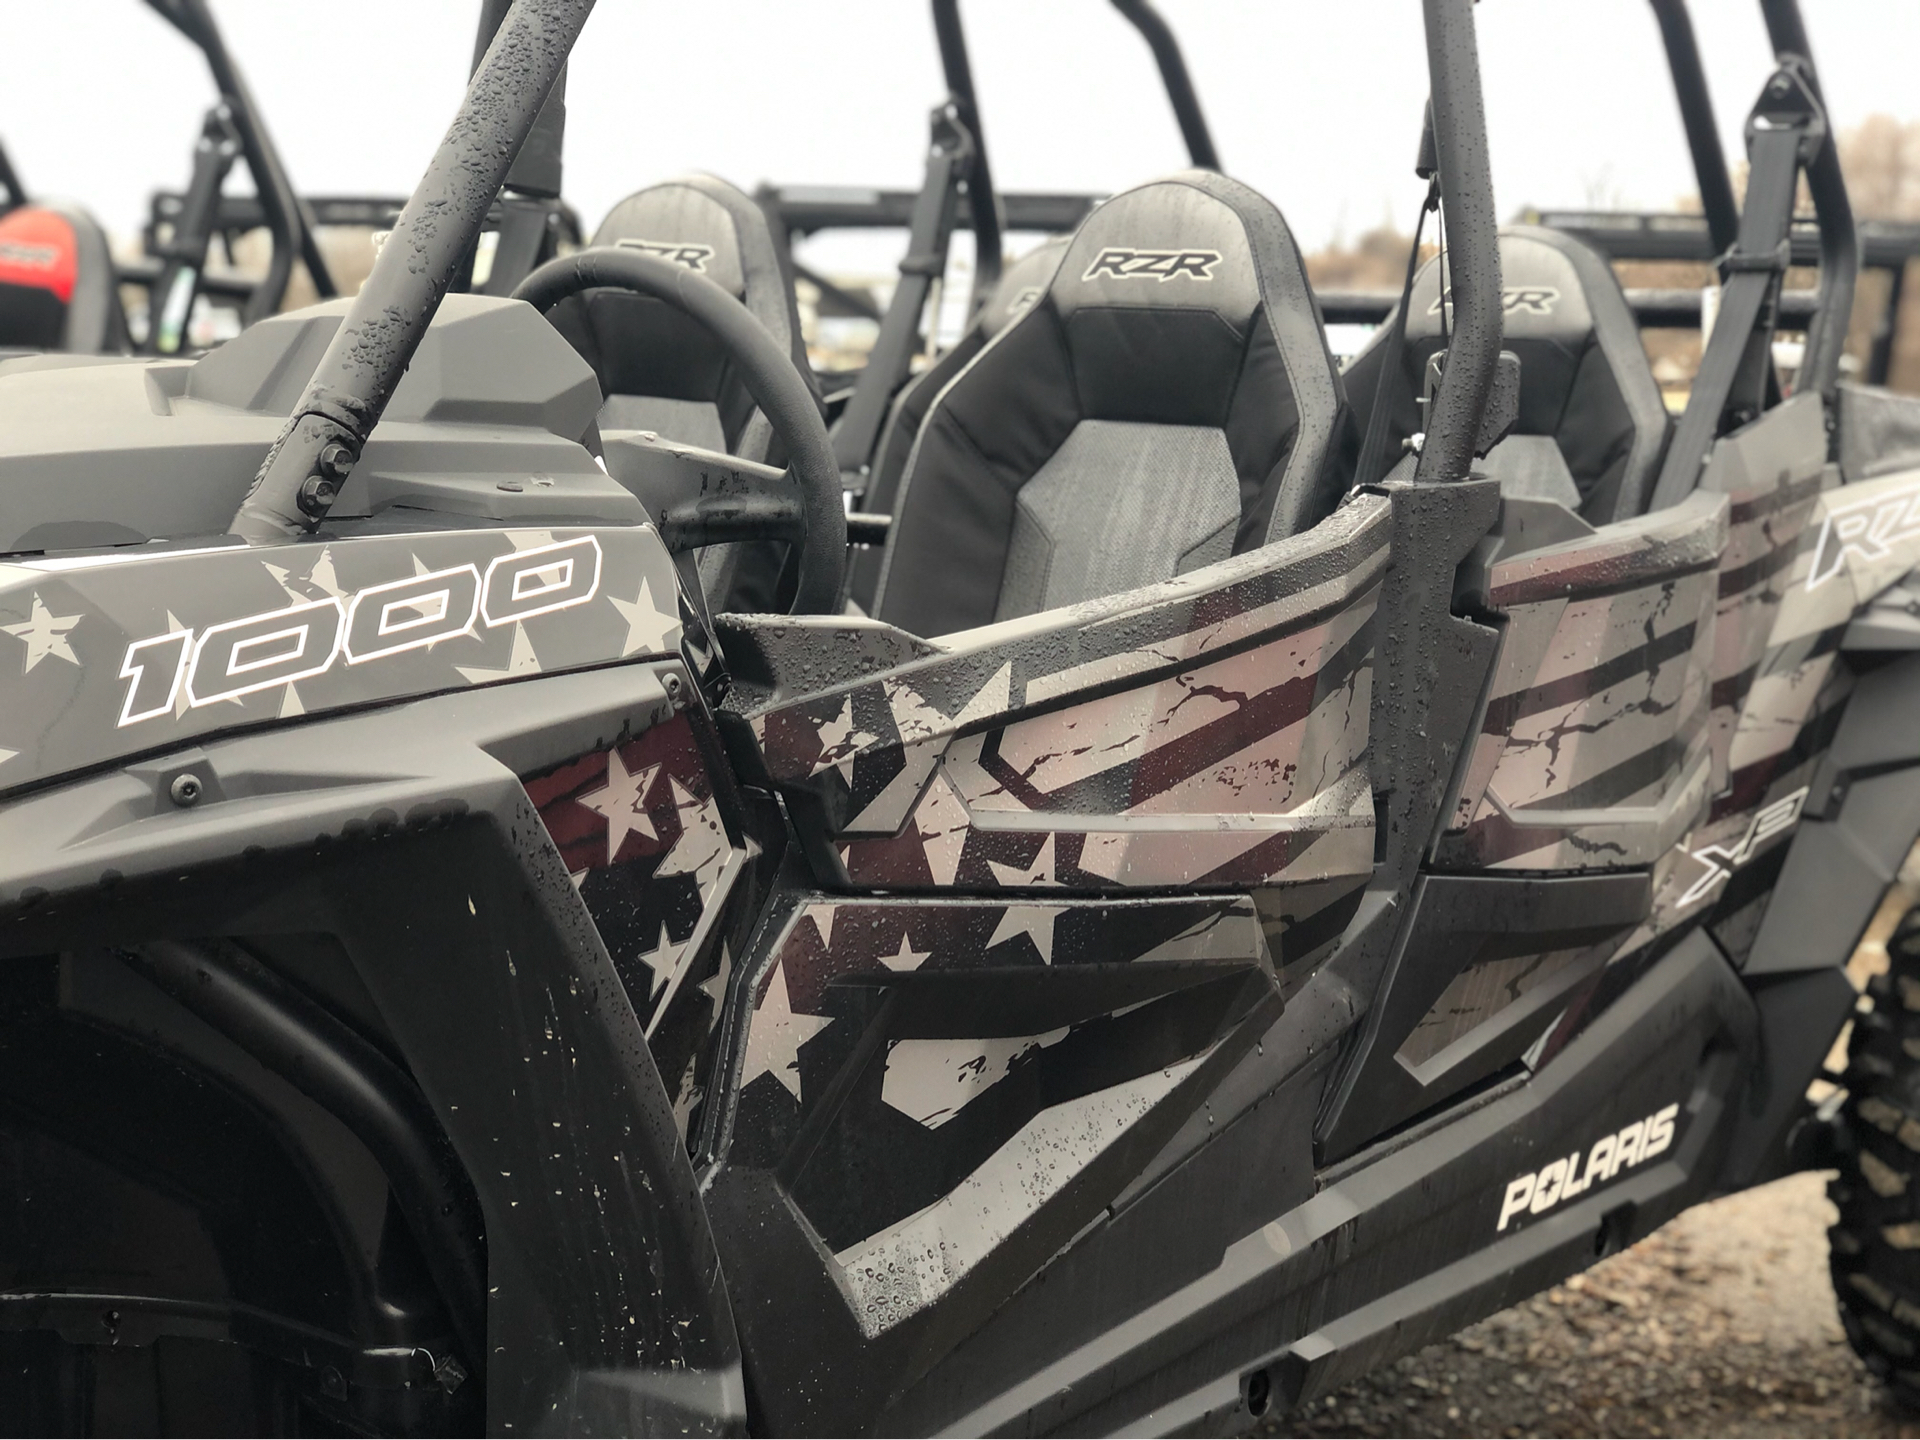 2020 Polaris RZR XP 4 1000 Limited Edition in Attica, Indiana - Photo 2